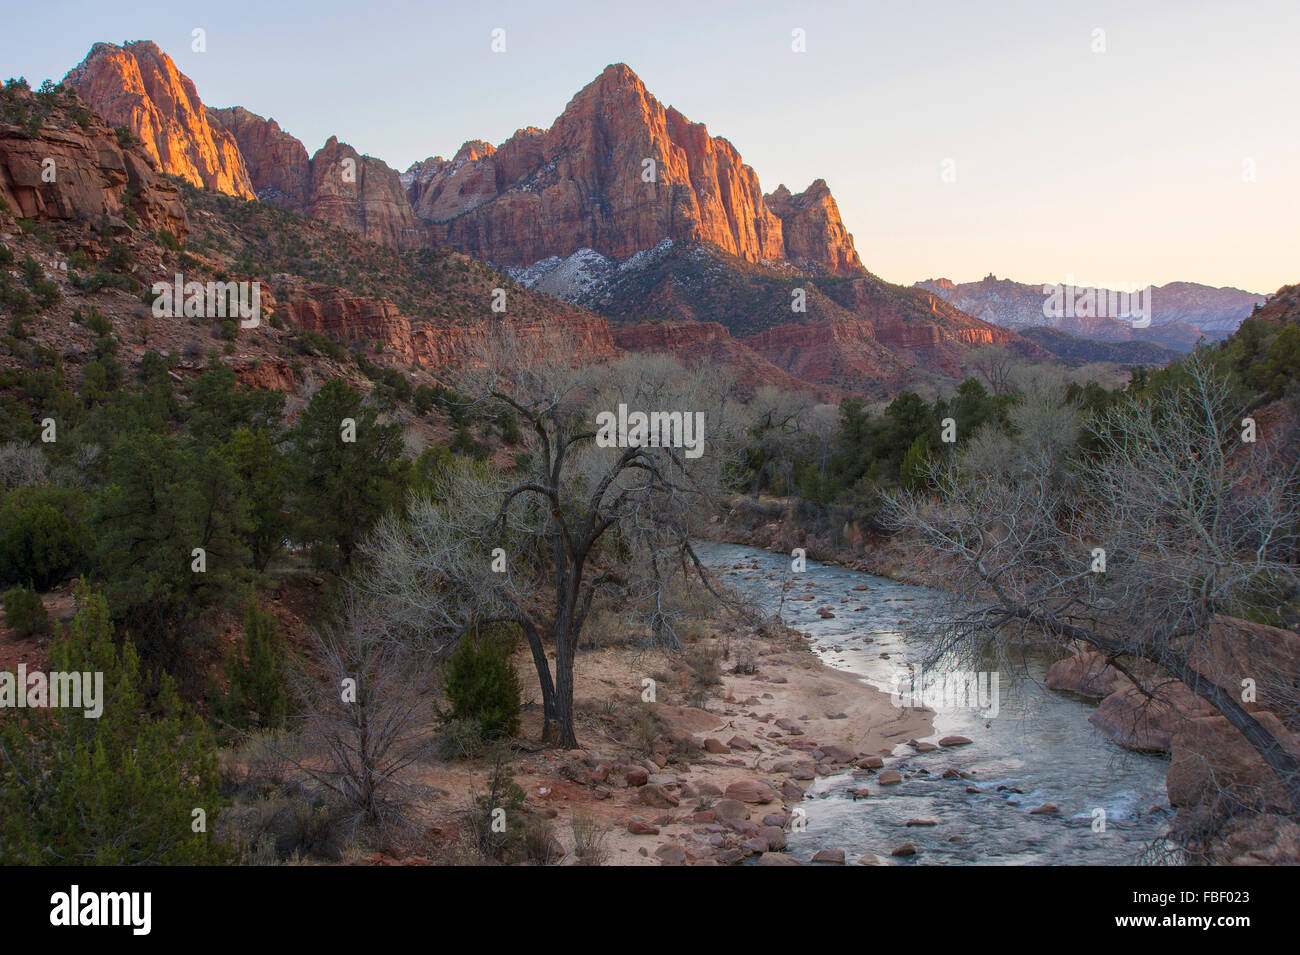 The Watchman, Zion National Park, Utah - Stock Image